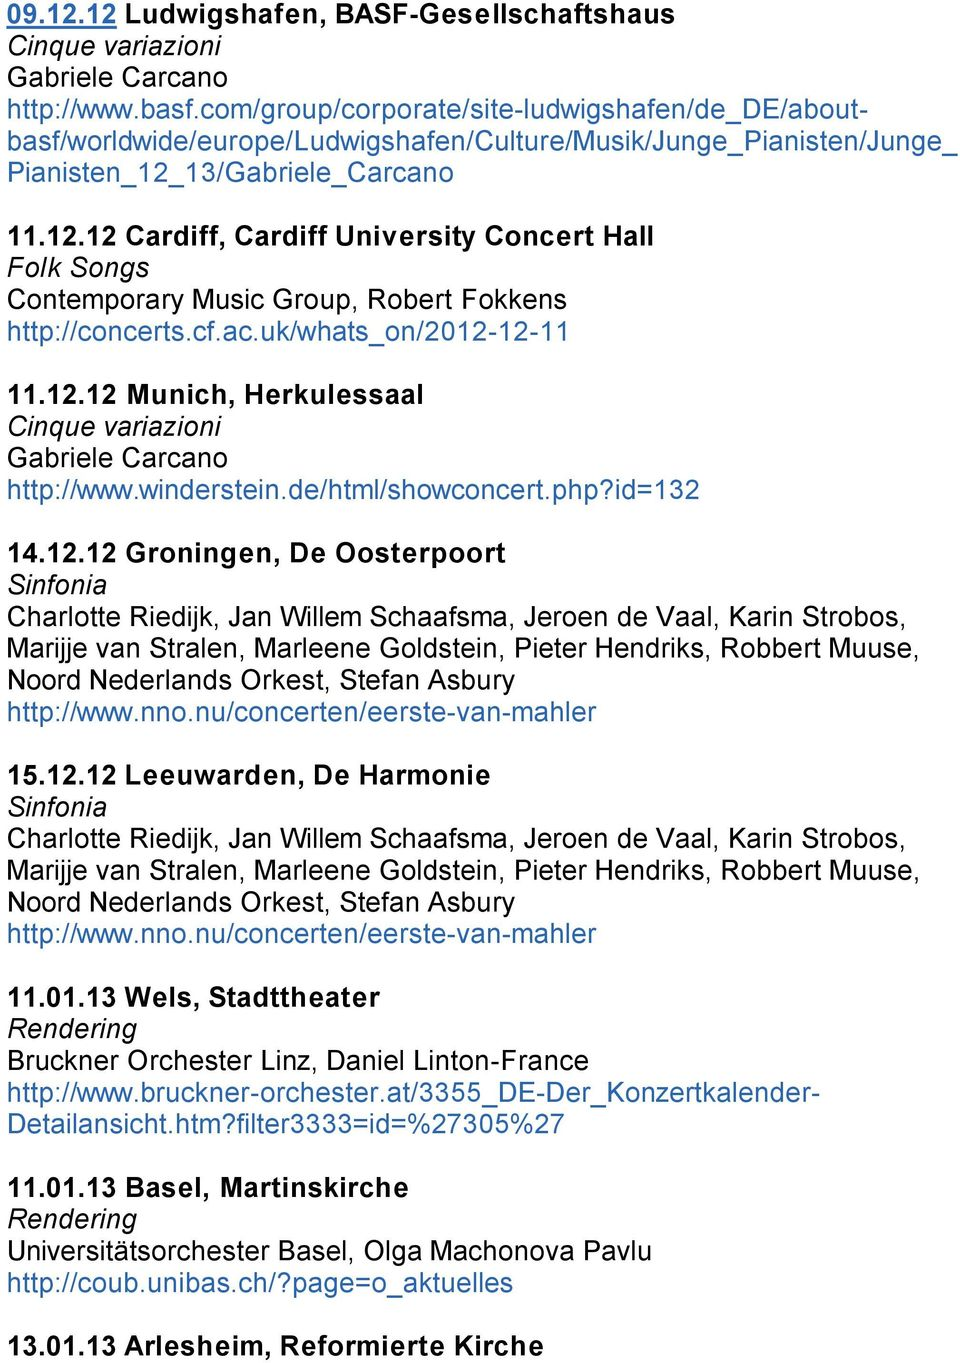 13/Gabriele_Carcano 11.12.12 Cardiff, Cardiff University Concert Hall Folk Songs Contemporary Music Group, Robert Fokkens http://concerts.cf.ac.uk/whats_on/2012-12-11 11.12.12 Munich, Herkulessaal Cinque variazioni Gabriele Carcano http://www.